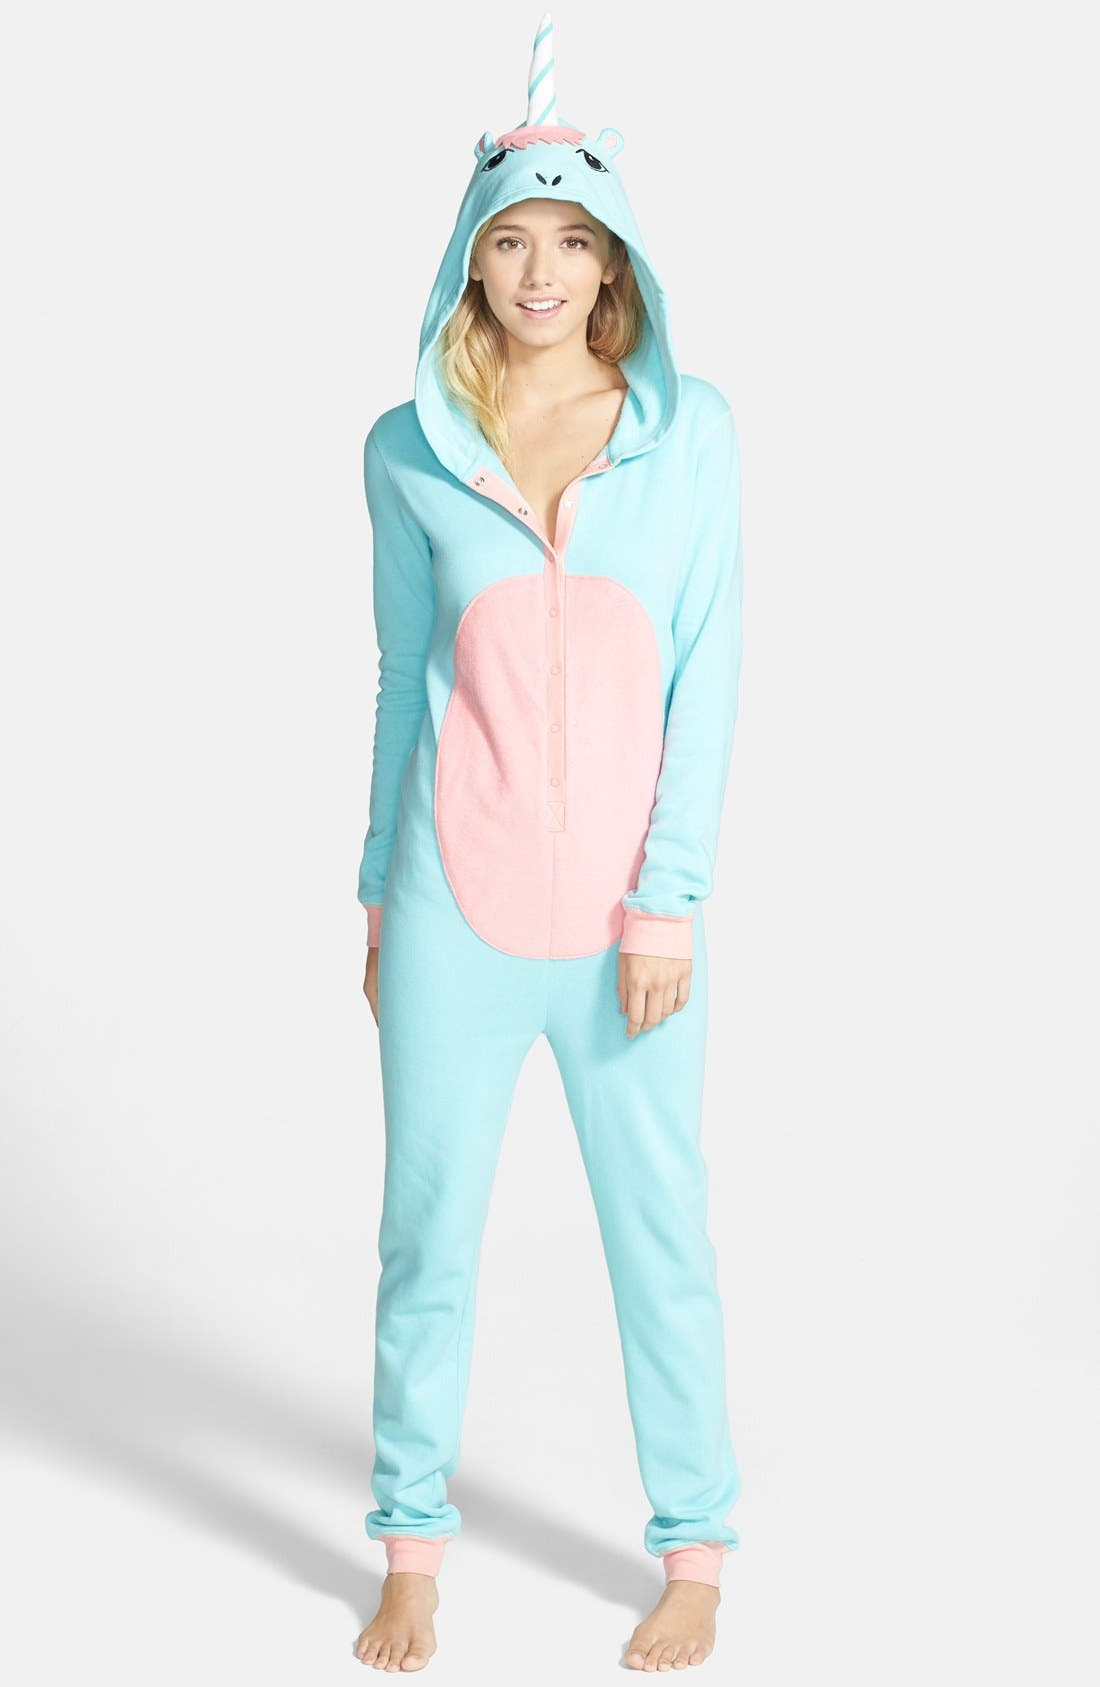 Alternate Image 1 Selected - BP. Undercover Unicorn Jumpsuit (Juniors)